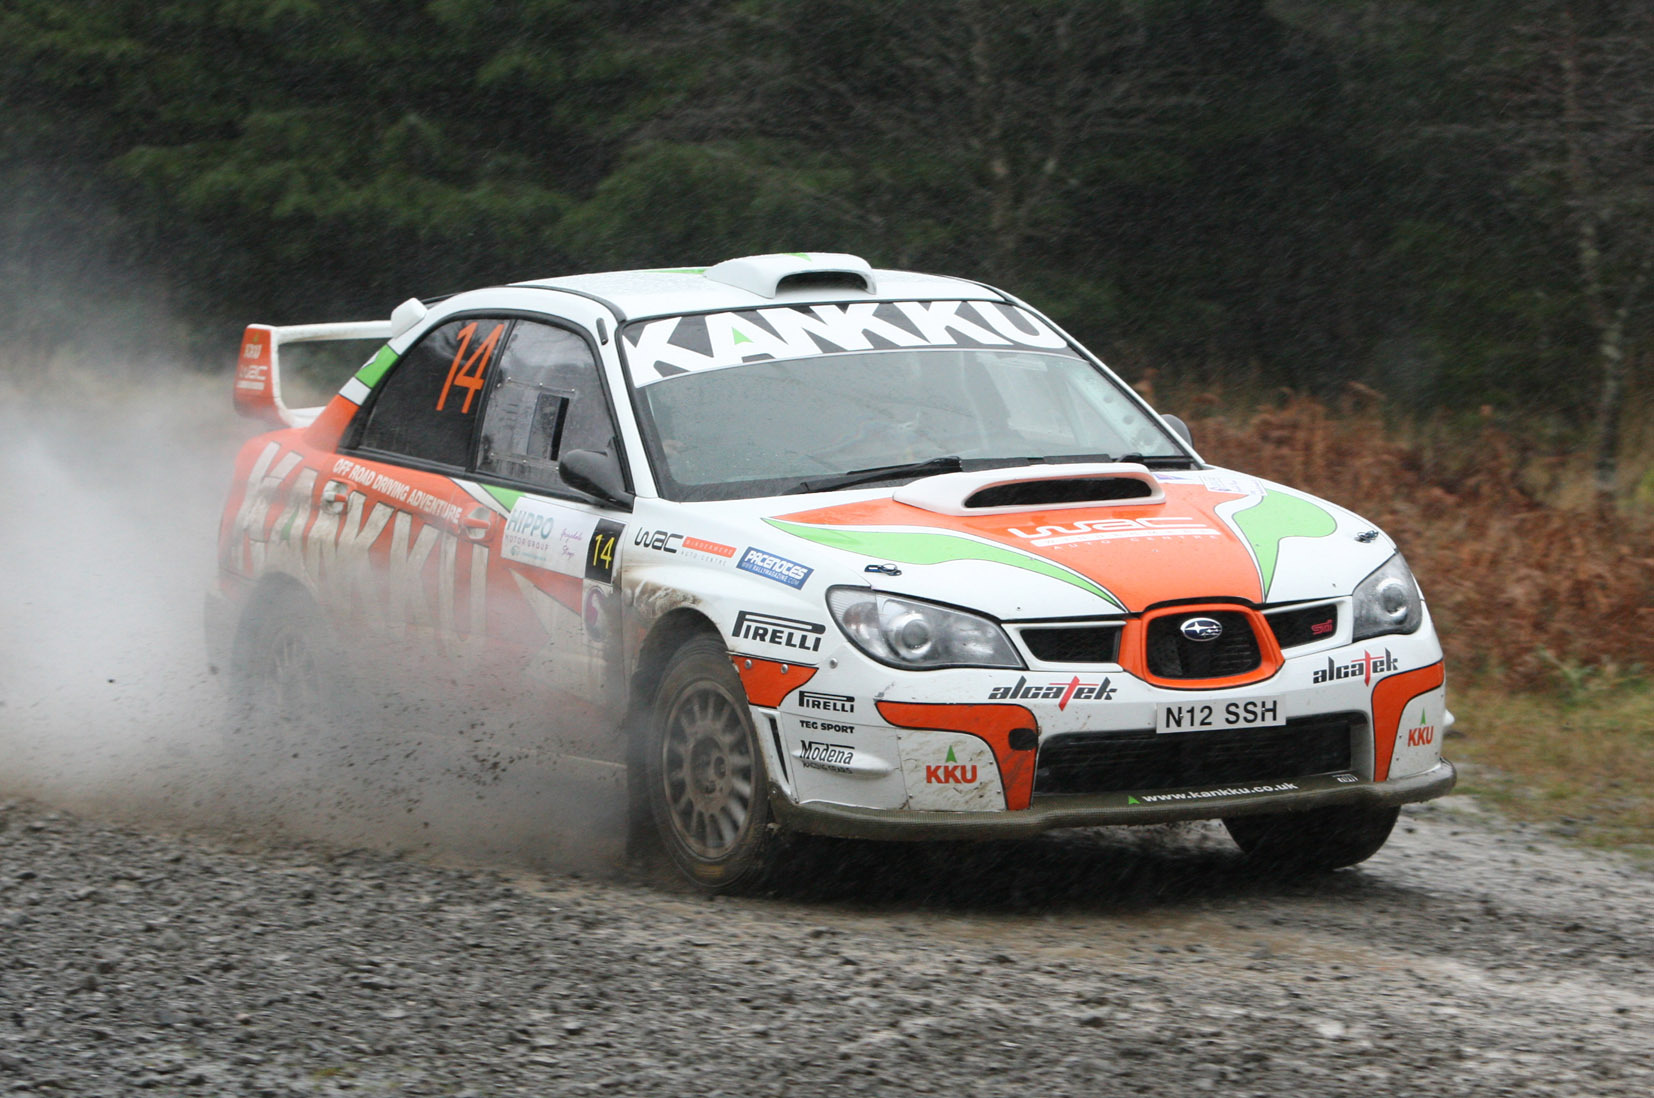 ON THE LIMIT: Windermere's Gary Tomlinson and co-driver Andy Murphy on the attack in this year's Grizedale Stages	 All pictures: Phil James